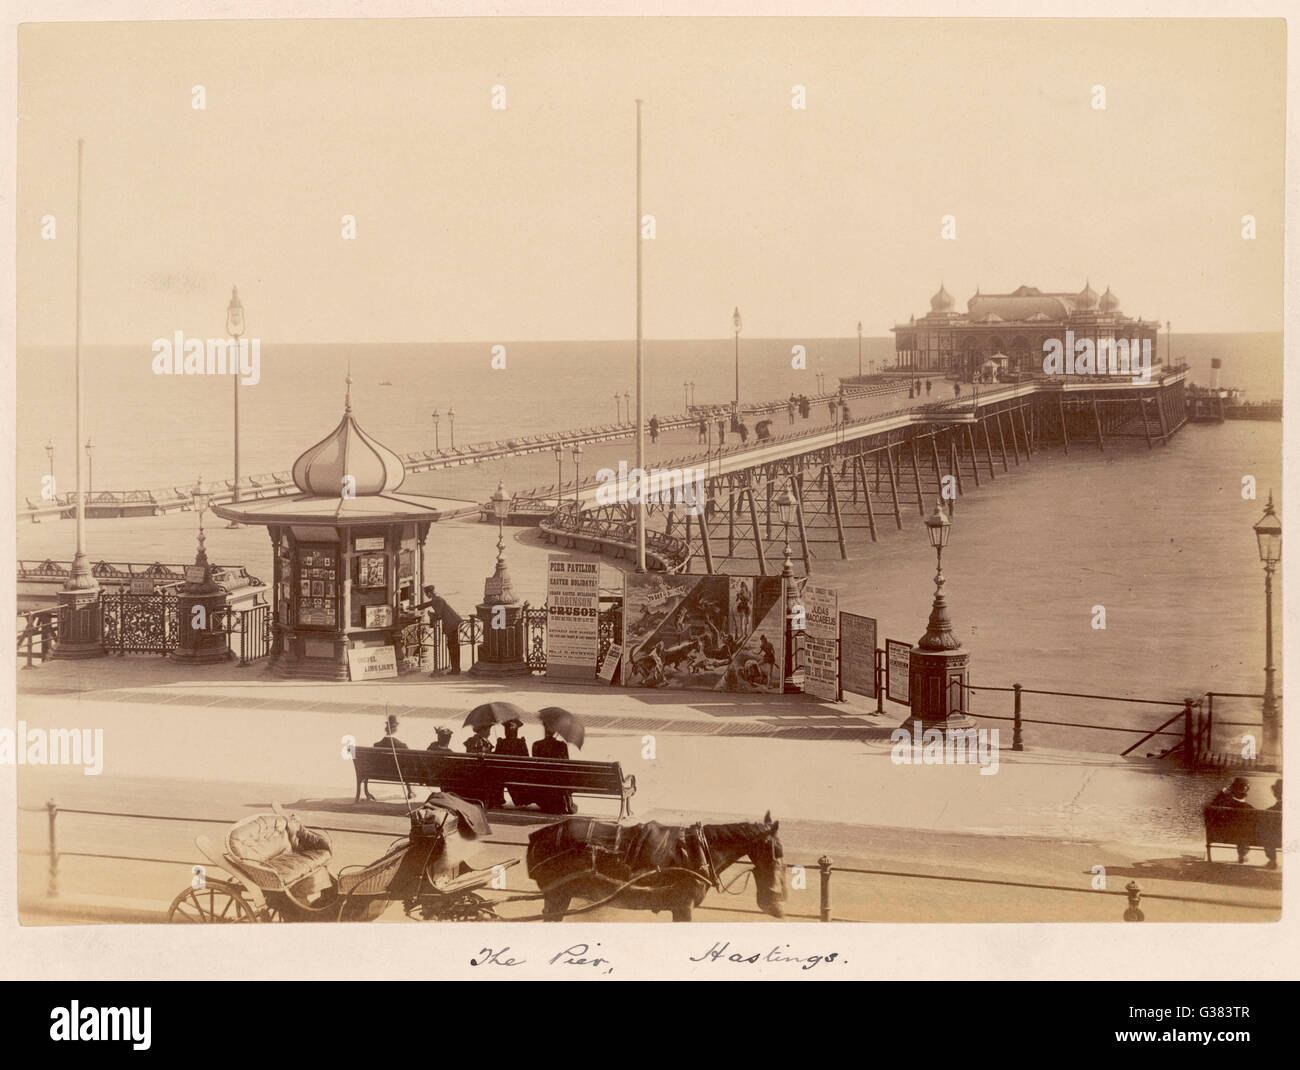 The Pier (admission 2d) with announcements of  'Robinson Crusoe', 'Judas  Maccabeus', excursions - Stock Image